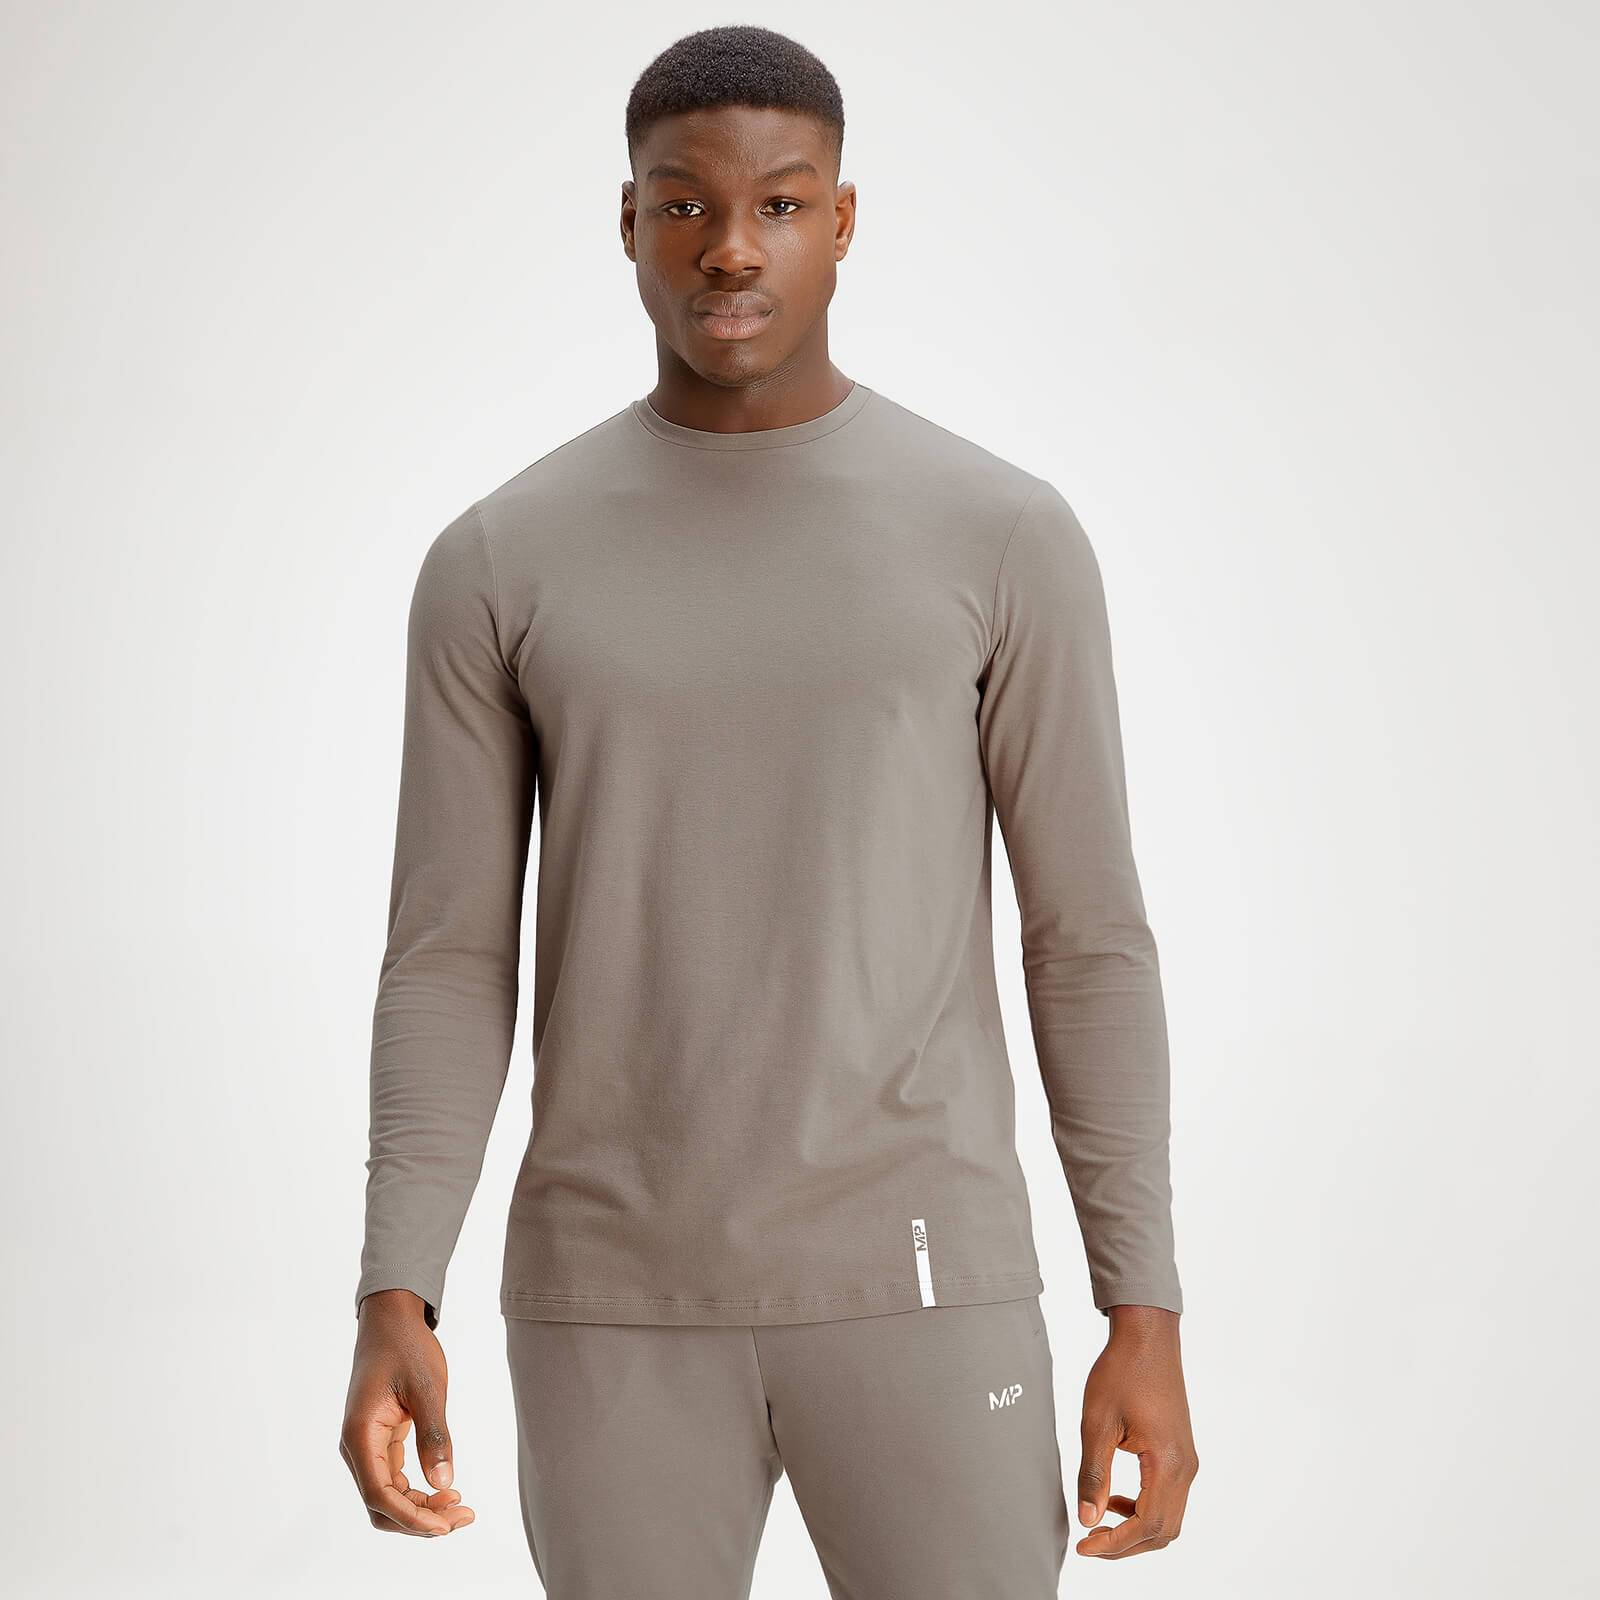 Mp Men's Luxe Classic Long Sleeve Crew Top - Taupe - XXXL